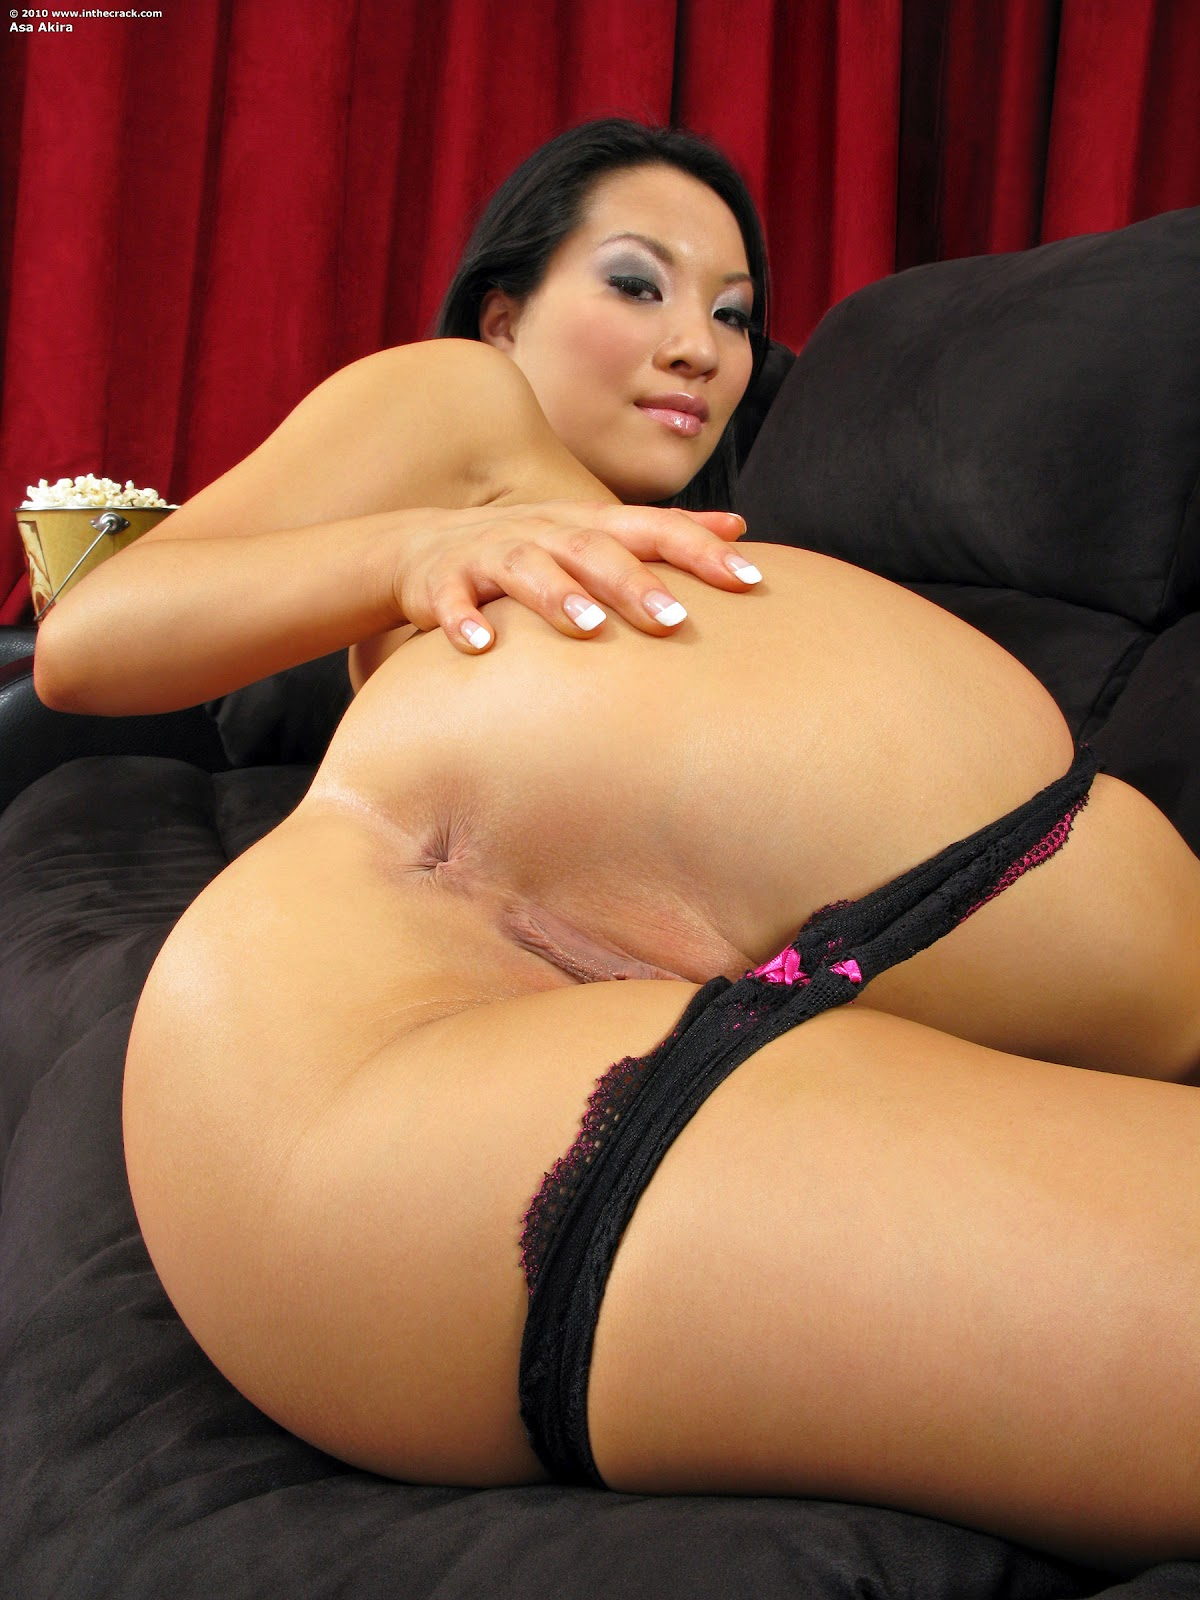 Asa Akira In The Crack 390 Complete Full Size Picture Set - Nude Ass-1610